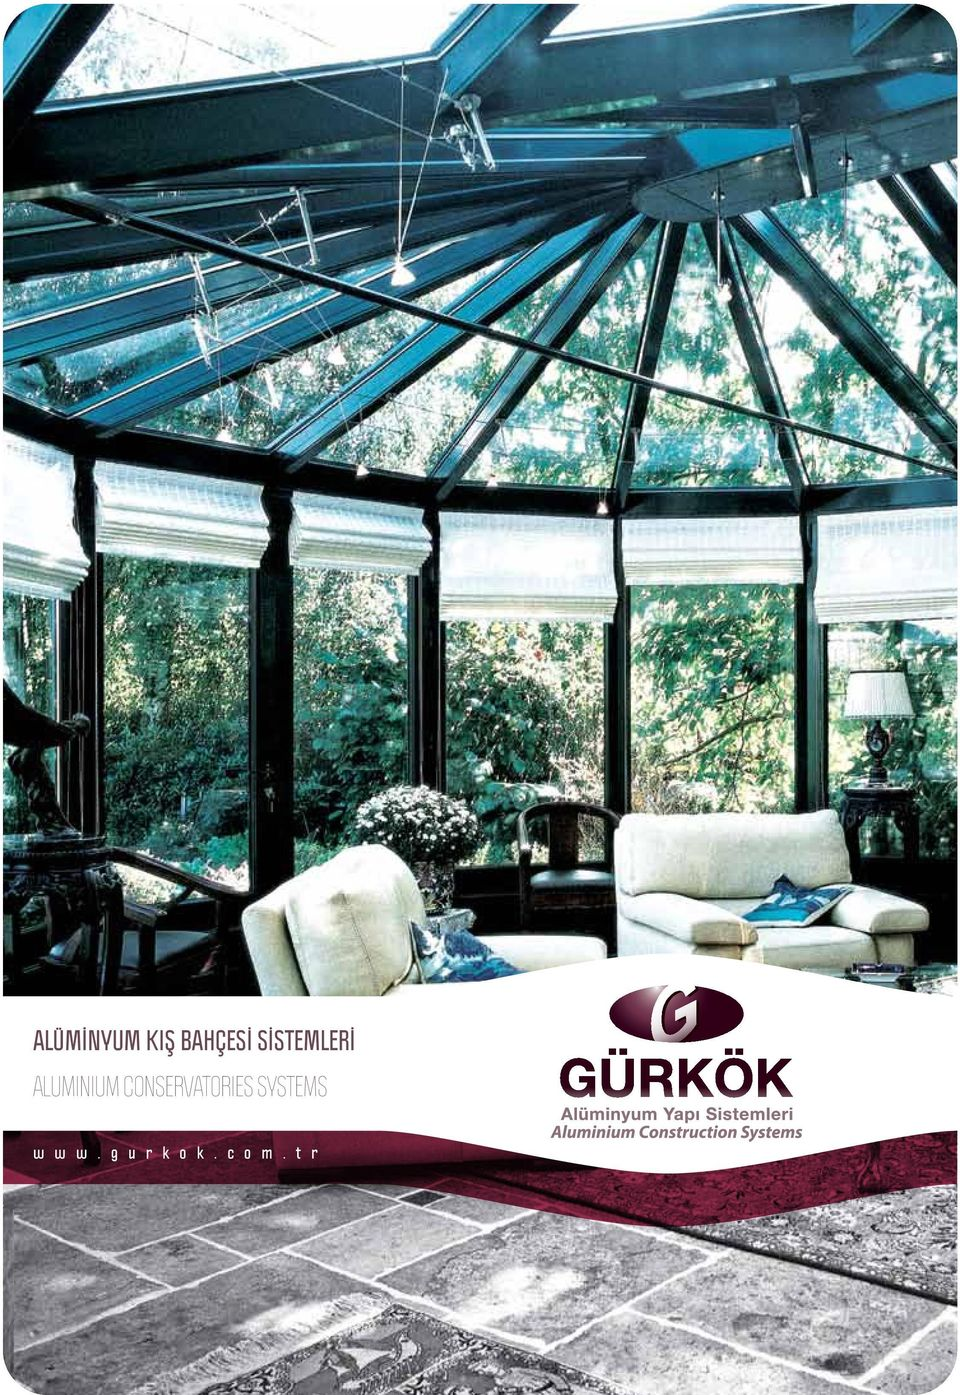 CONSERVATORIES SYSTEMS